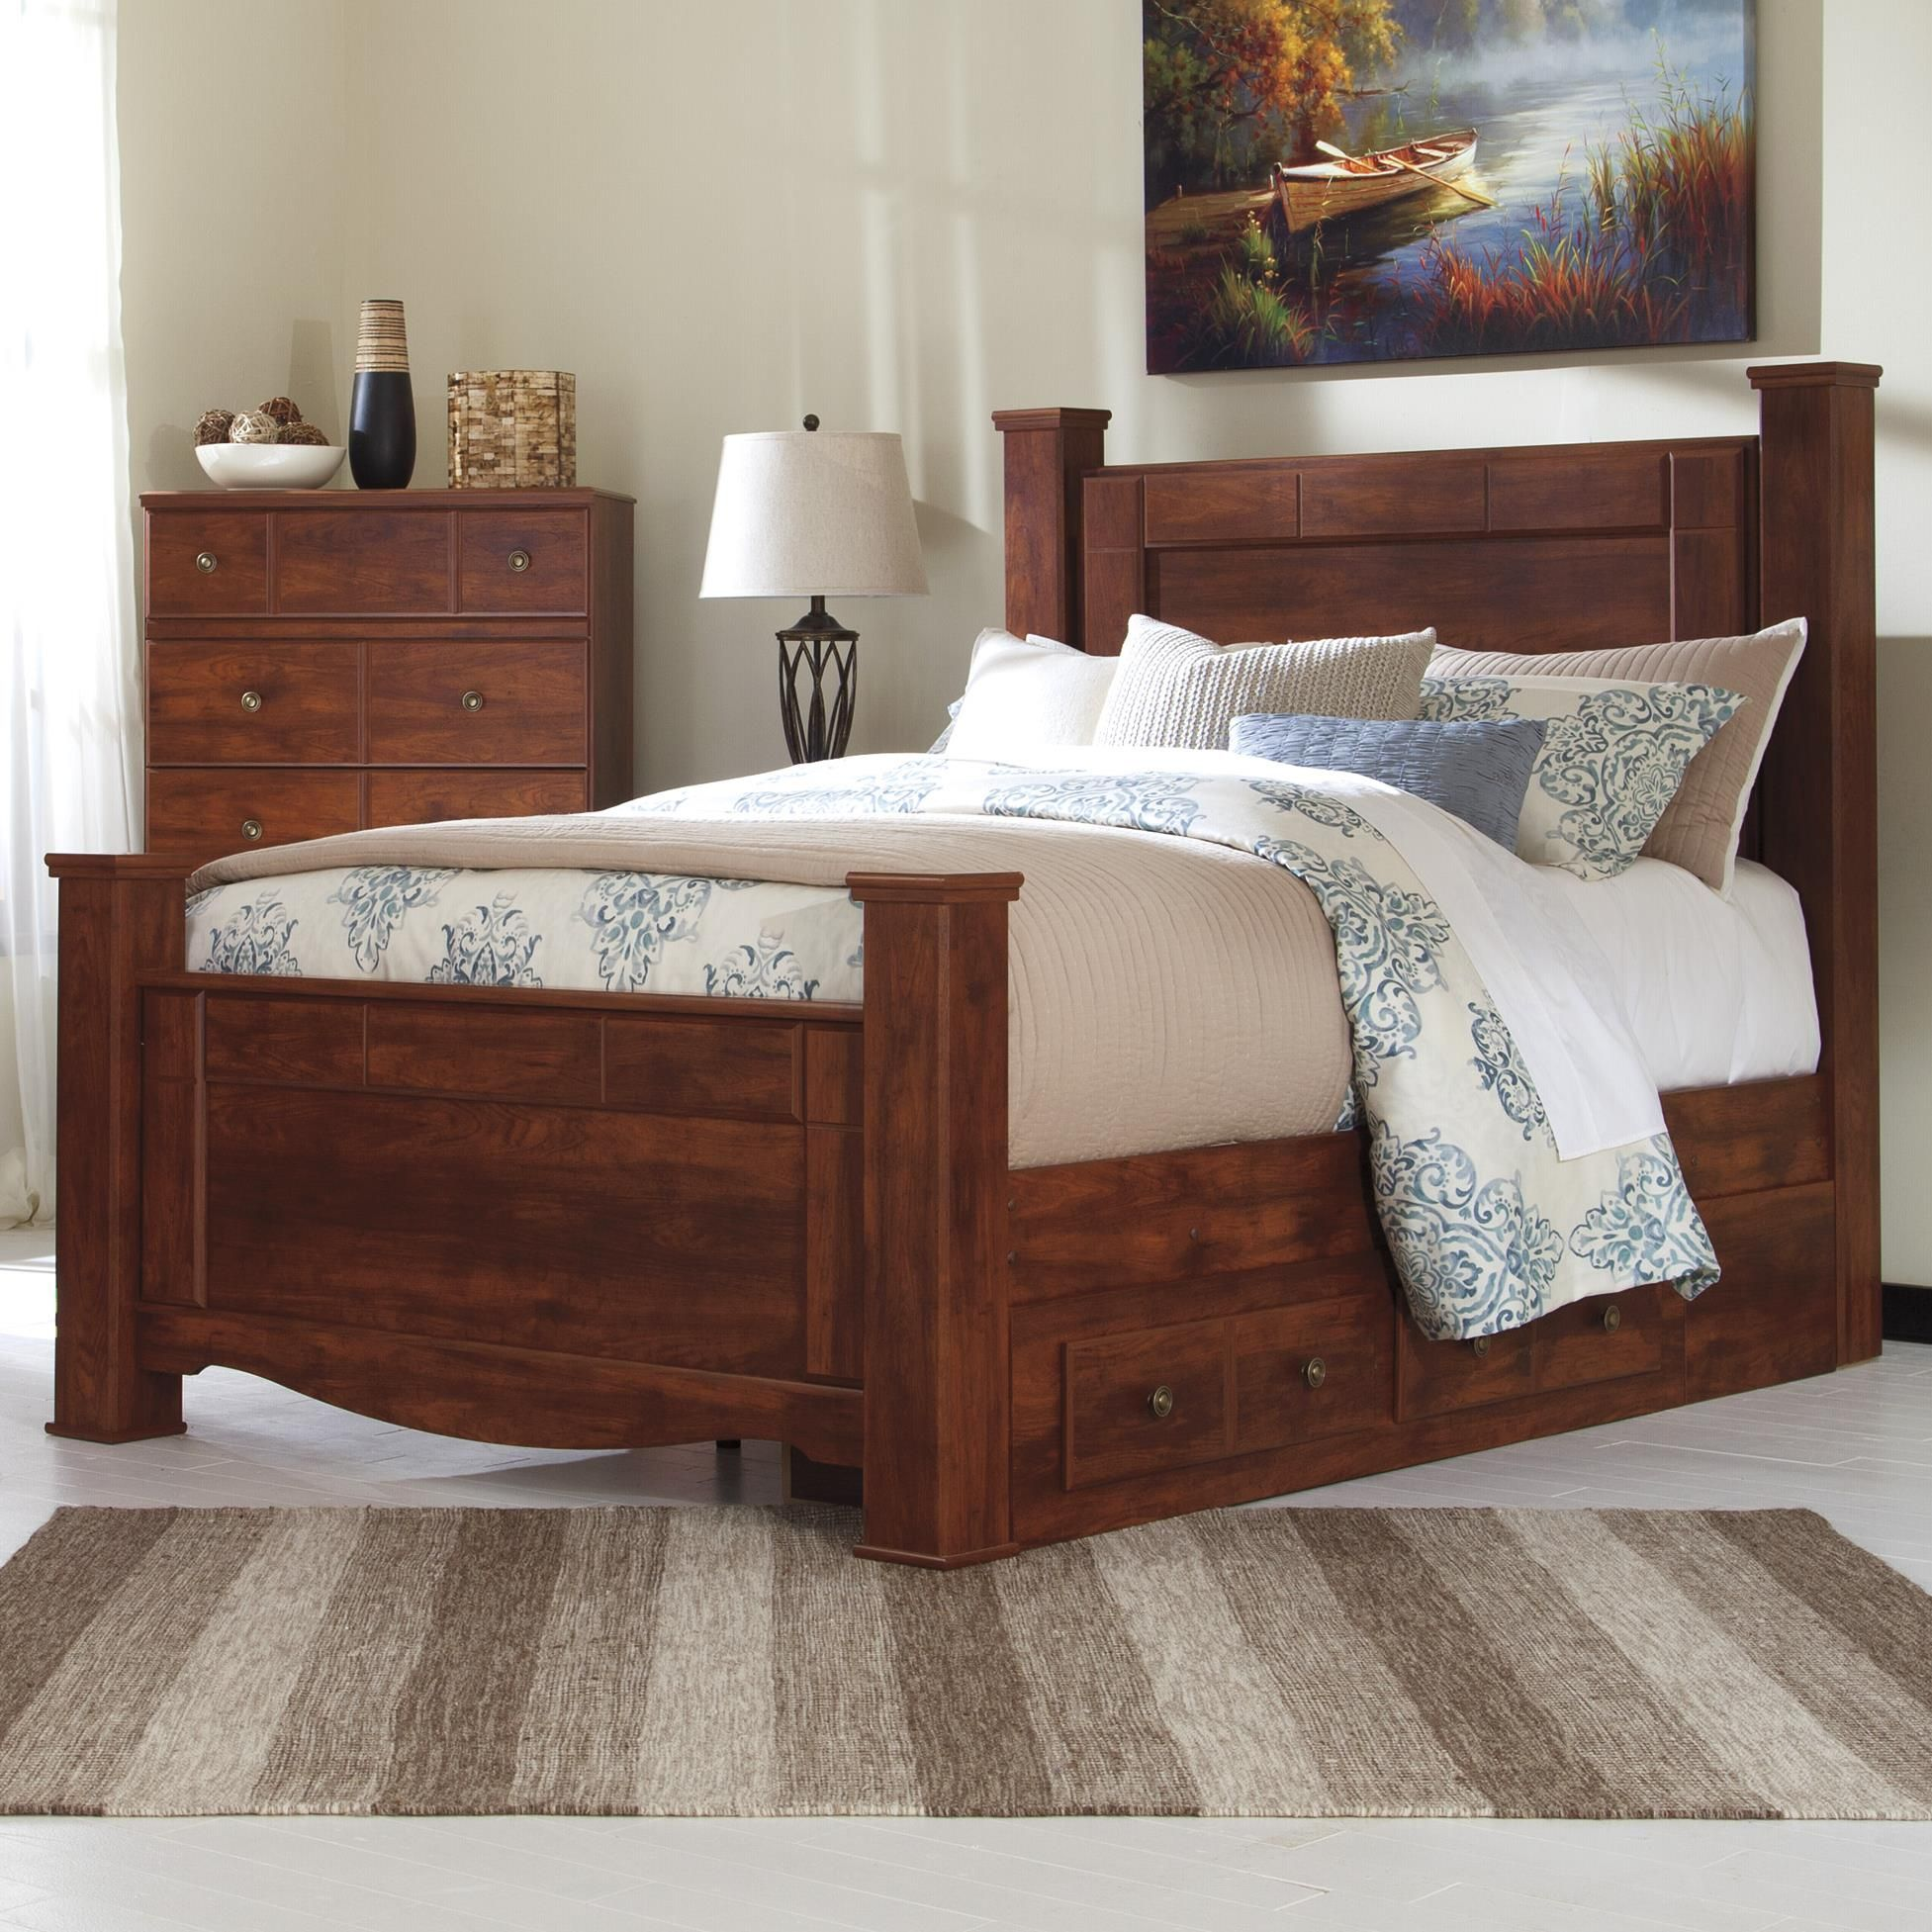 Queen Poster Bed with Underbed Storage Bed with underbed